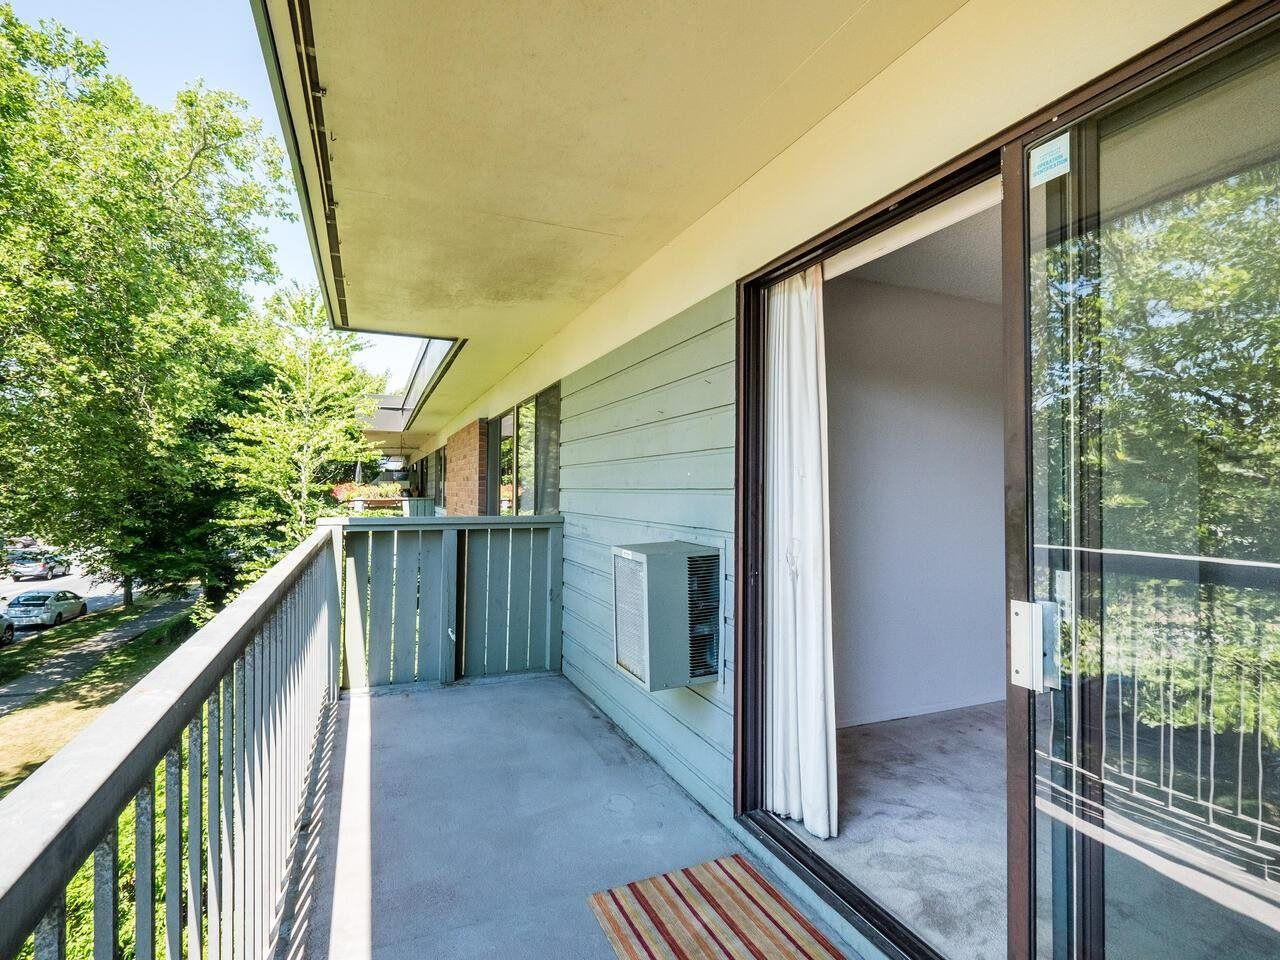 """Photo 9: Photos: 209 2600 E 49TH Avenue in Vancouver: Killarney VE Condo for sale in """"Southwinds"""" (Vancouver East)  : MLS®# R2600173"""